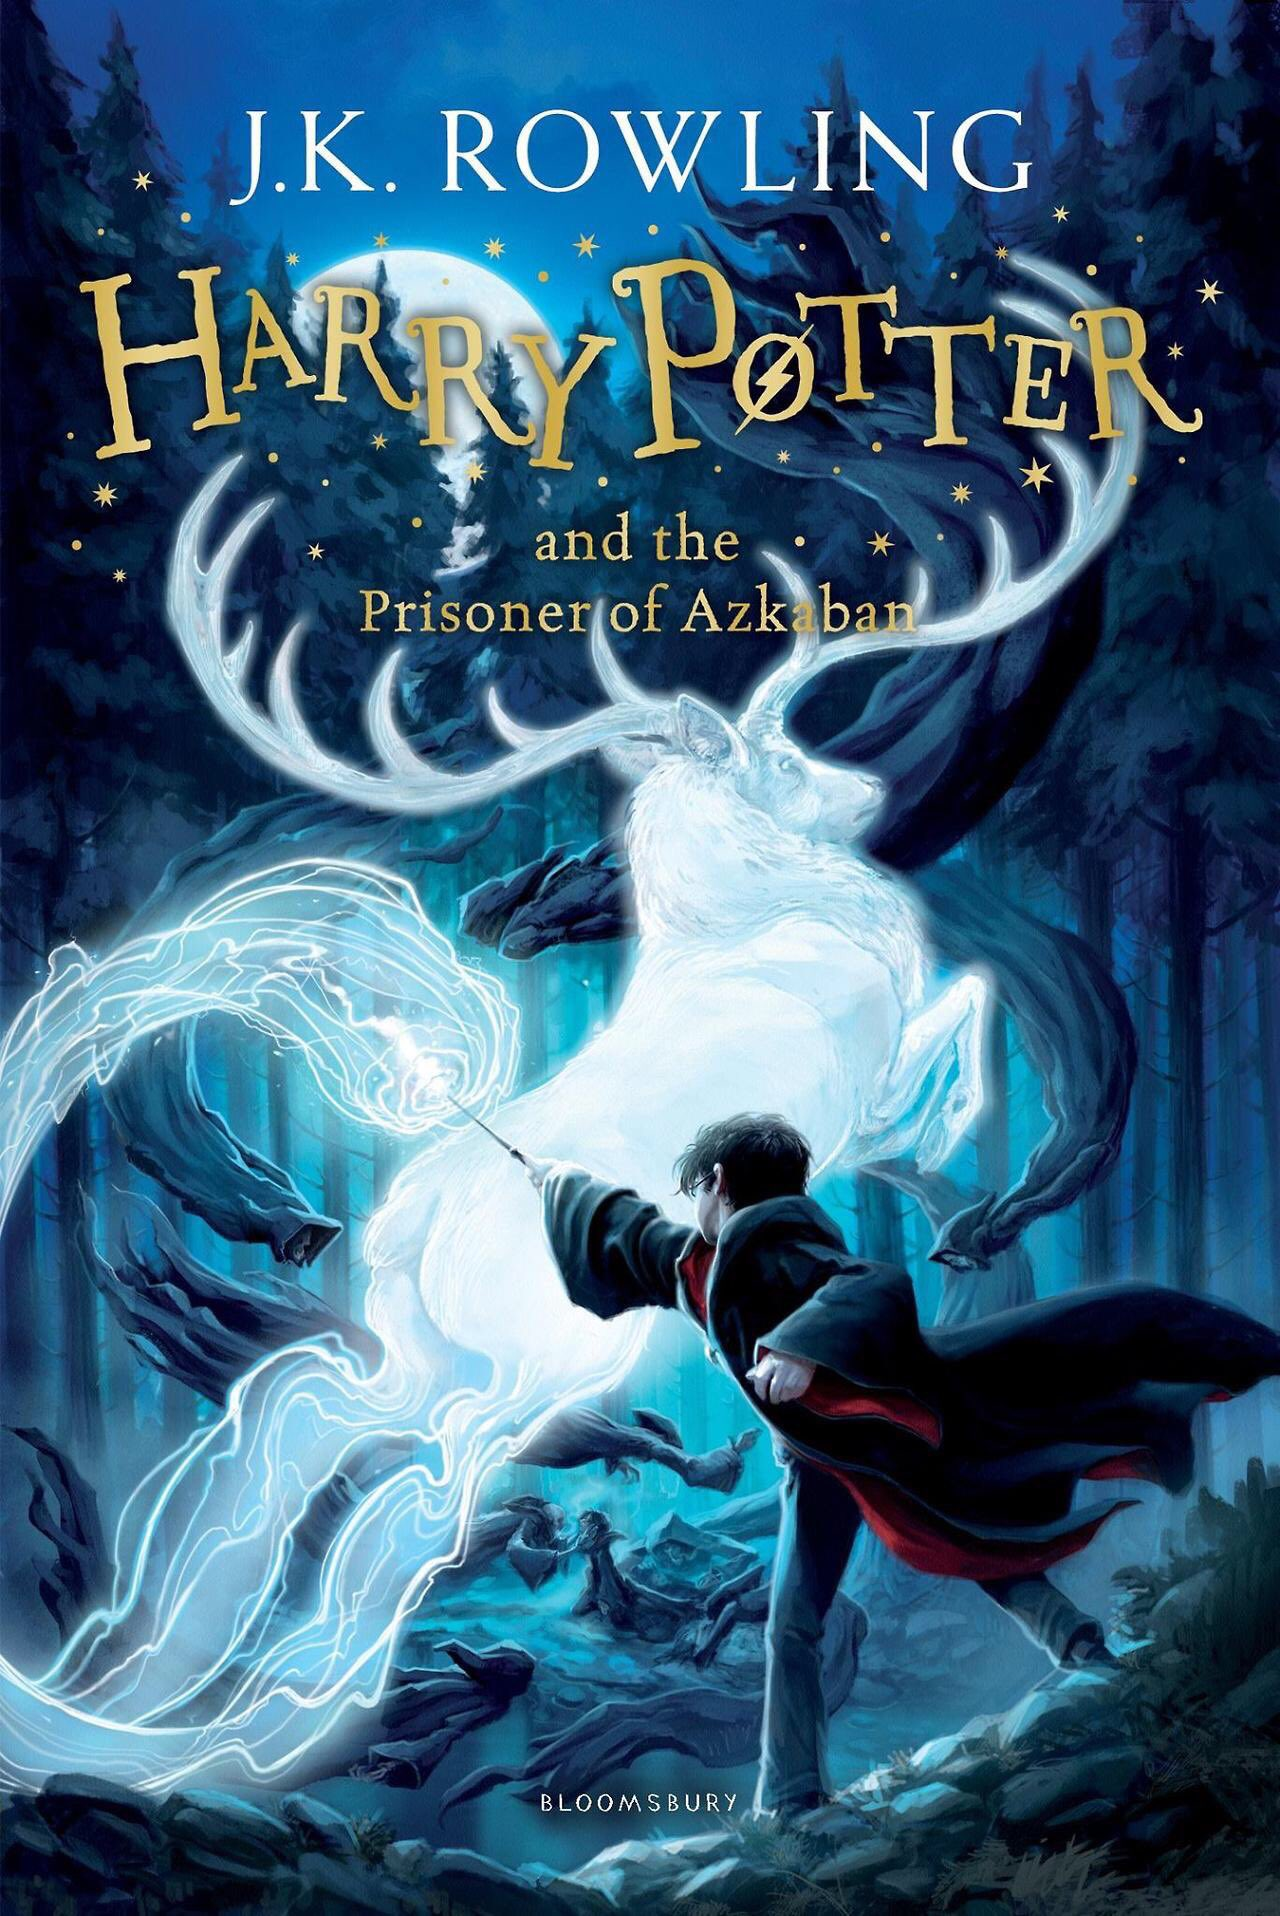 Happy 20th birthday to the greatest book of the harry potter series and basically of all time